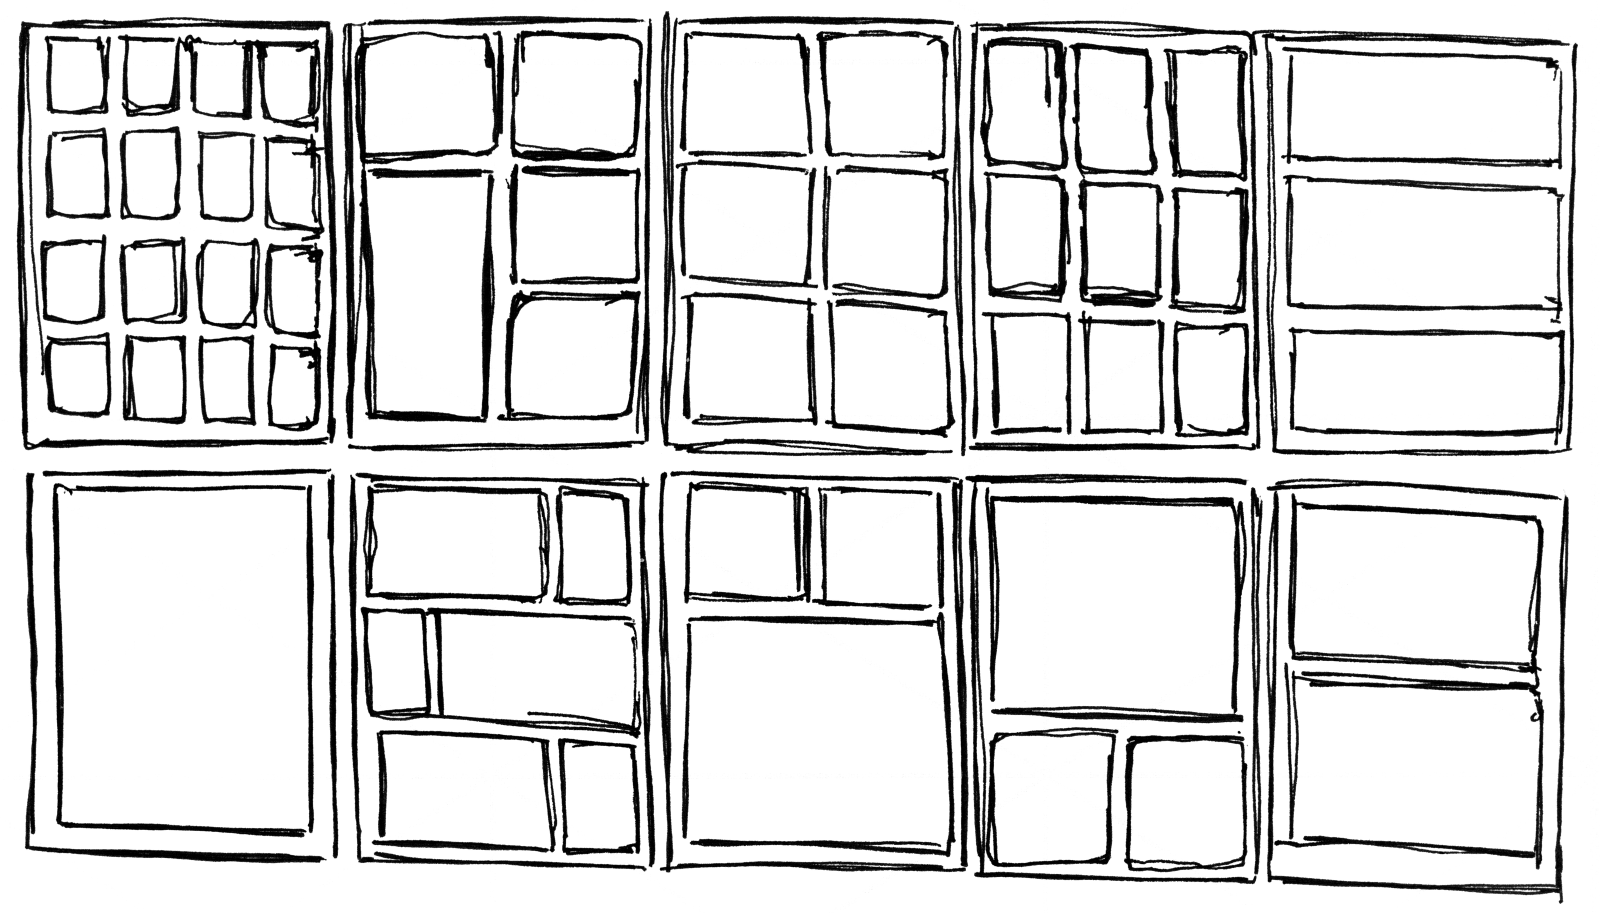 Examples of panels organized in, and aligned to, regular grids